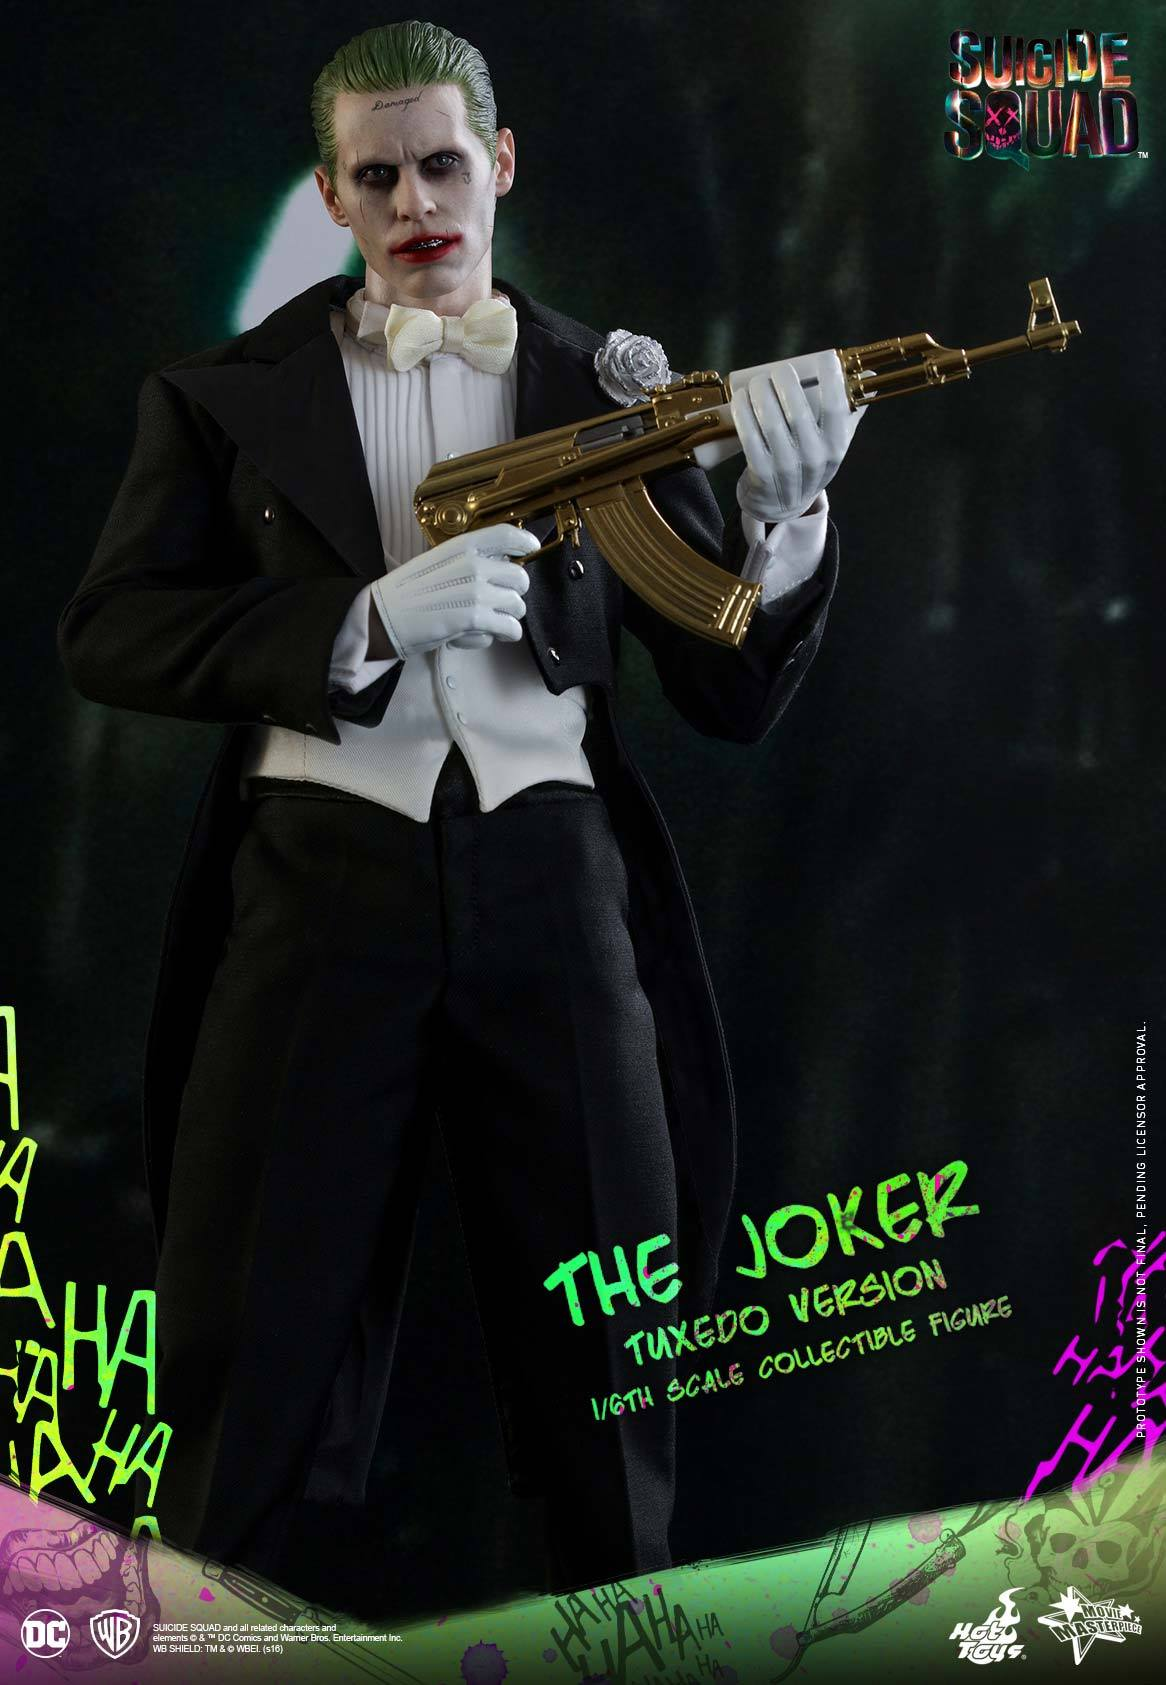 Suicide Squad Hot Toys - The Joker (Tuxedo version)